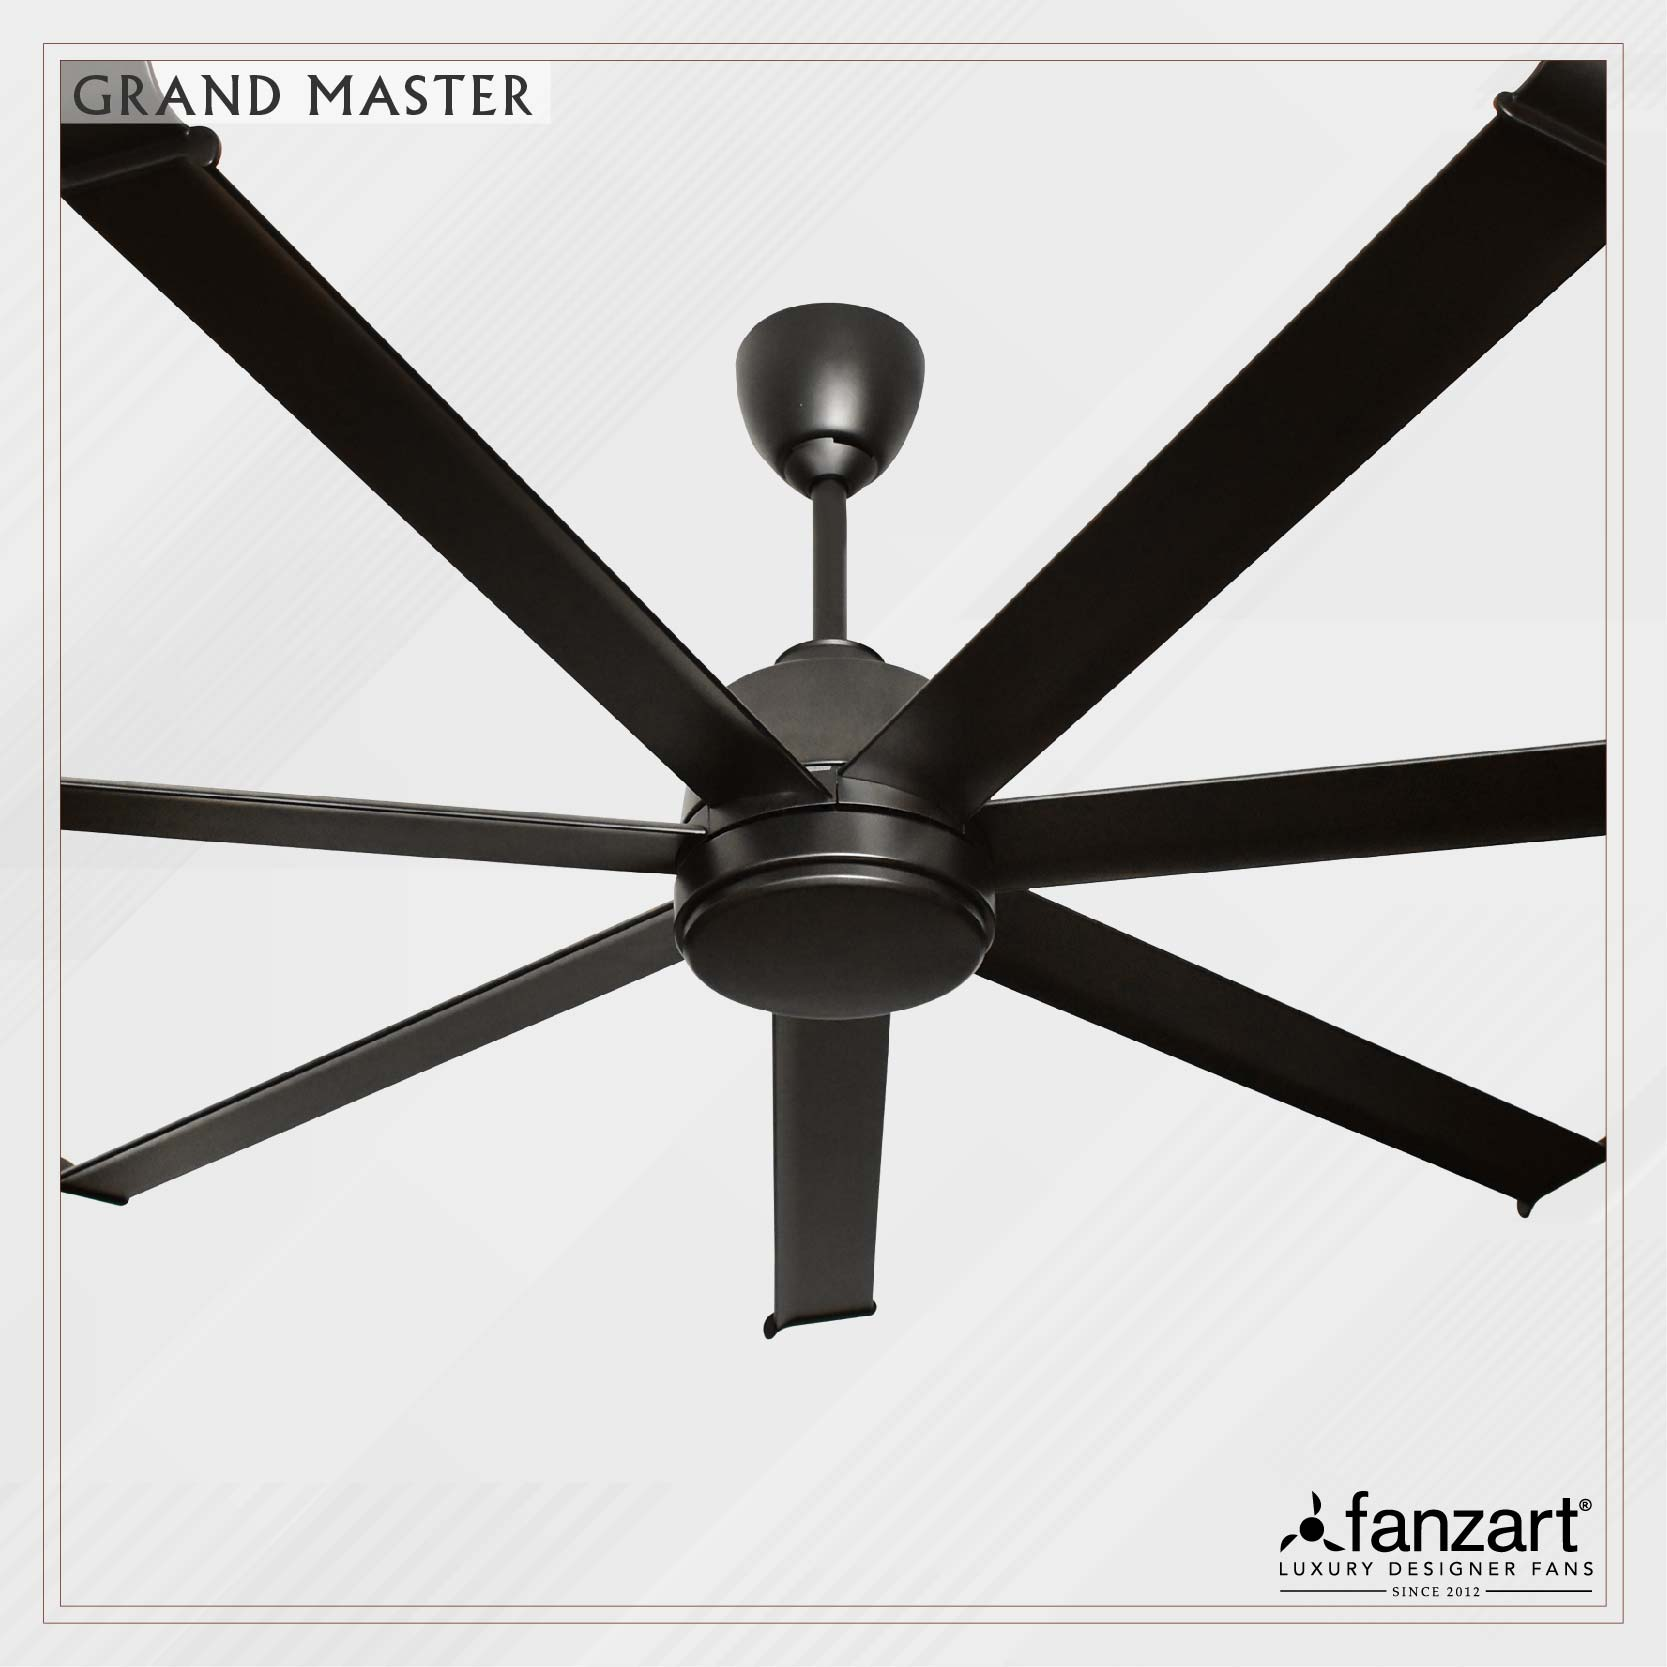 """Fanzart launches """"Grandmaster""""- new age long blade fans for Commercial and Hospitality sector"""